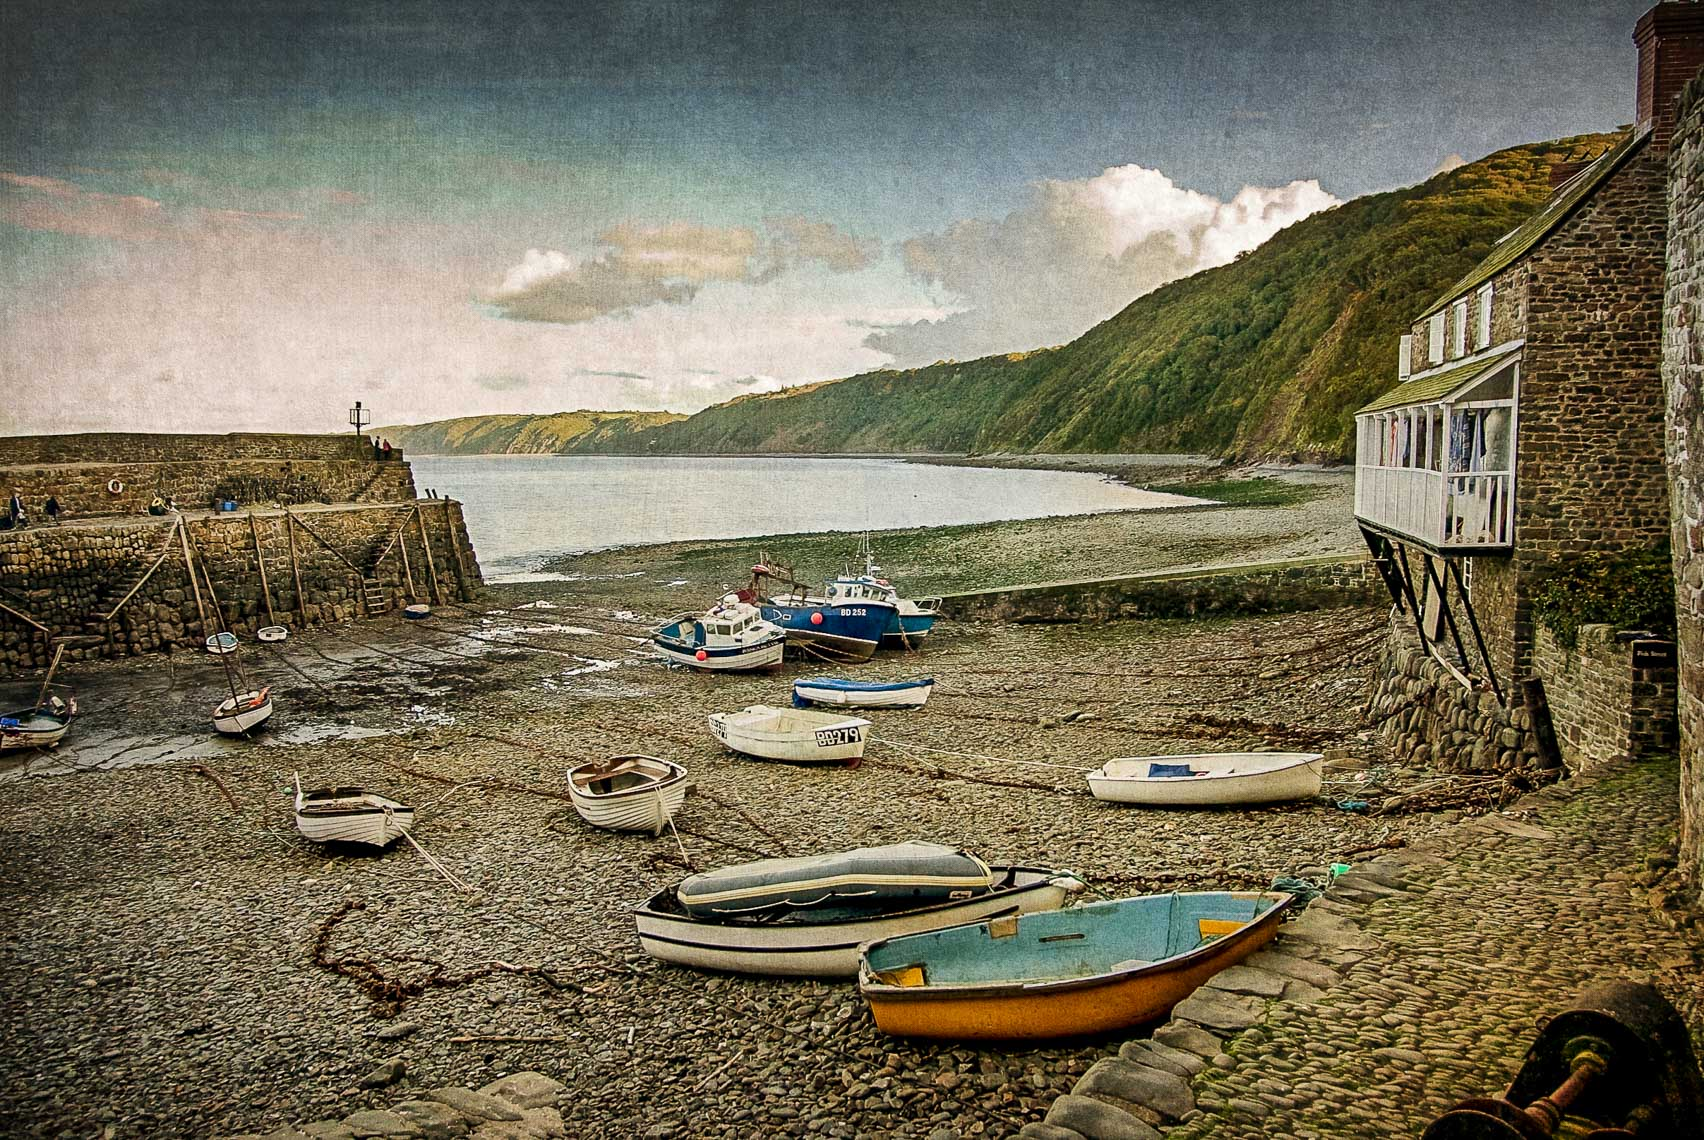 Dusk at Clovelly Harbour, Devon